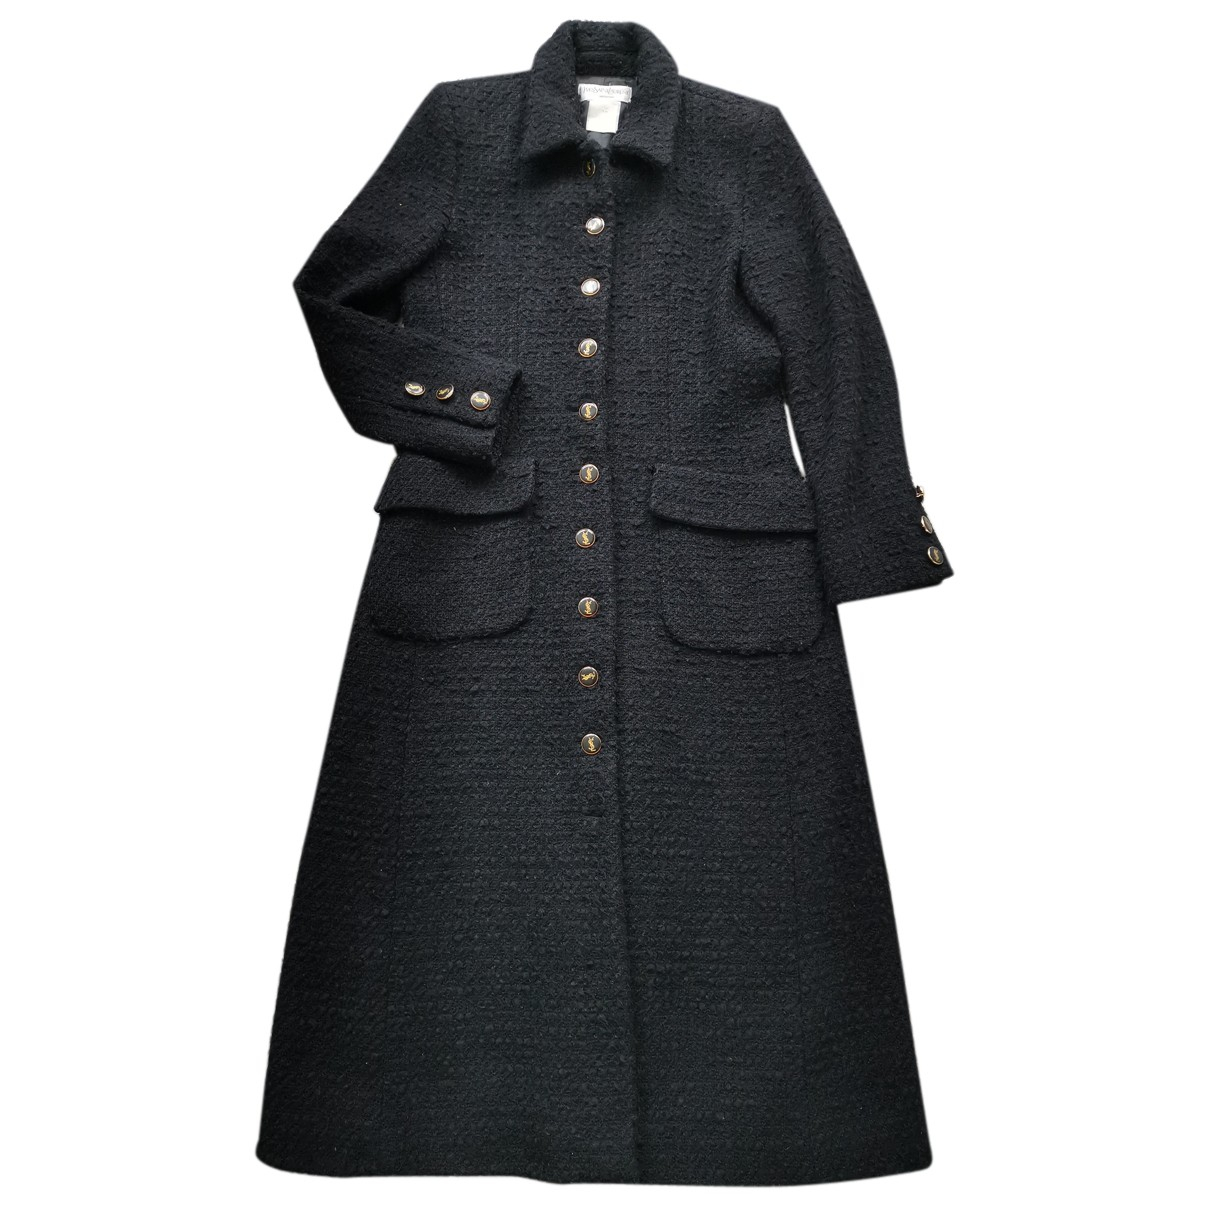 Yves Saint Laurent N Black Tweed coat for Women 38 FR